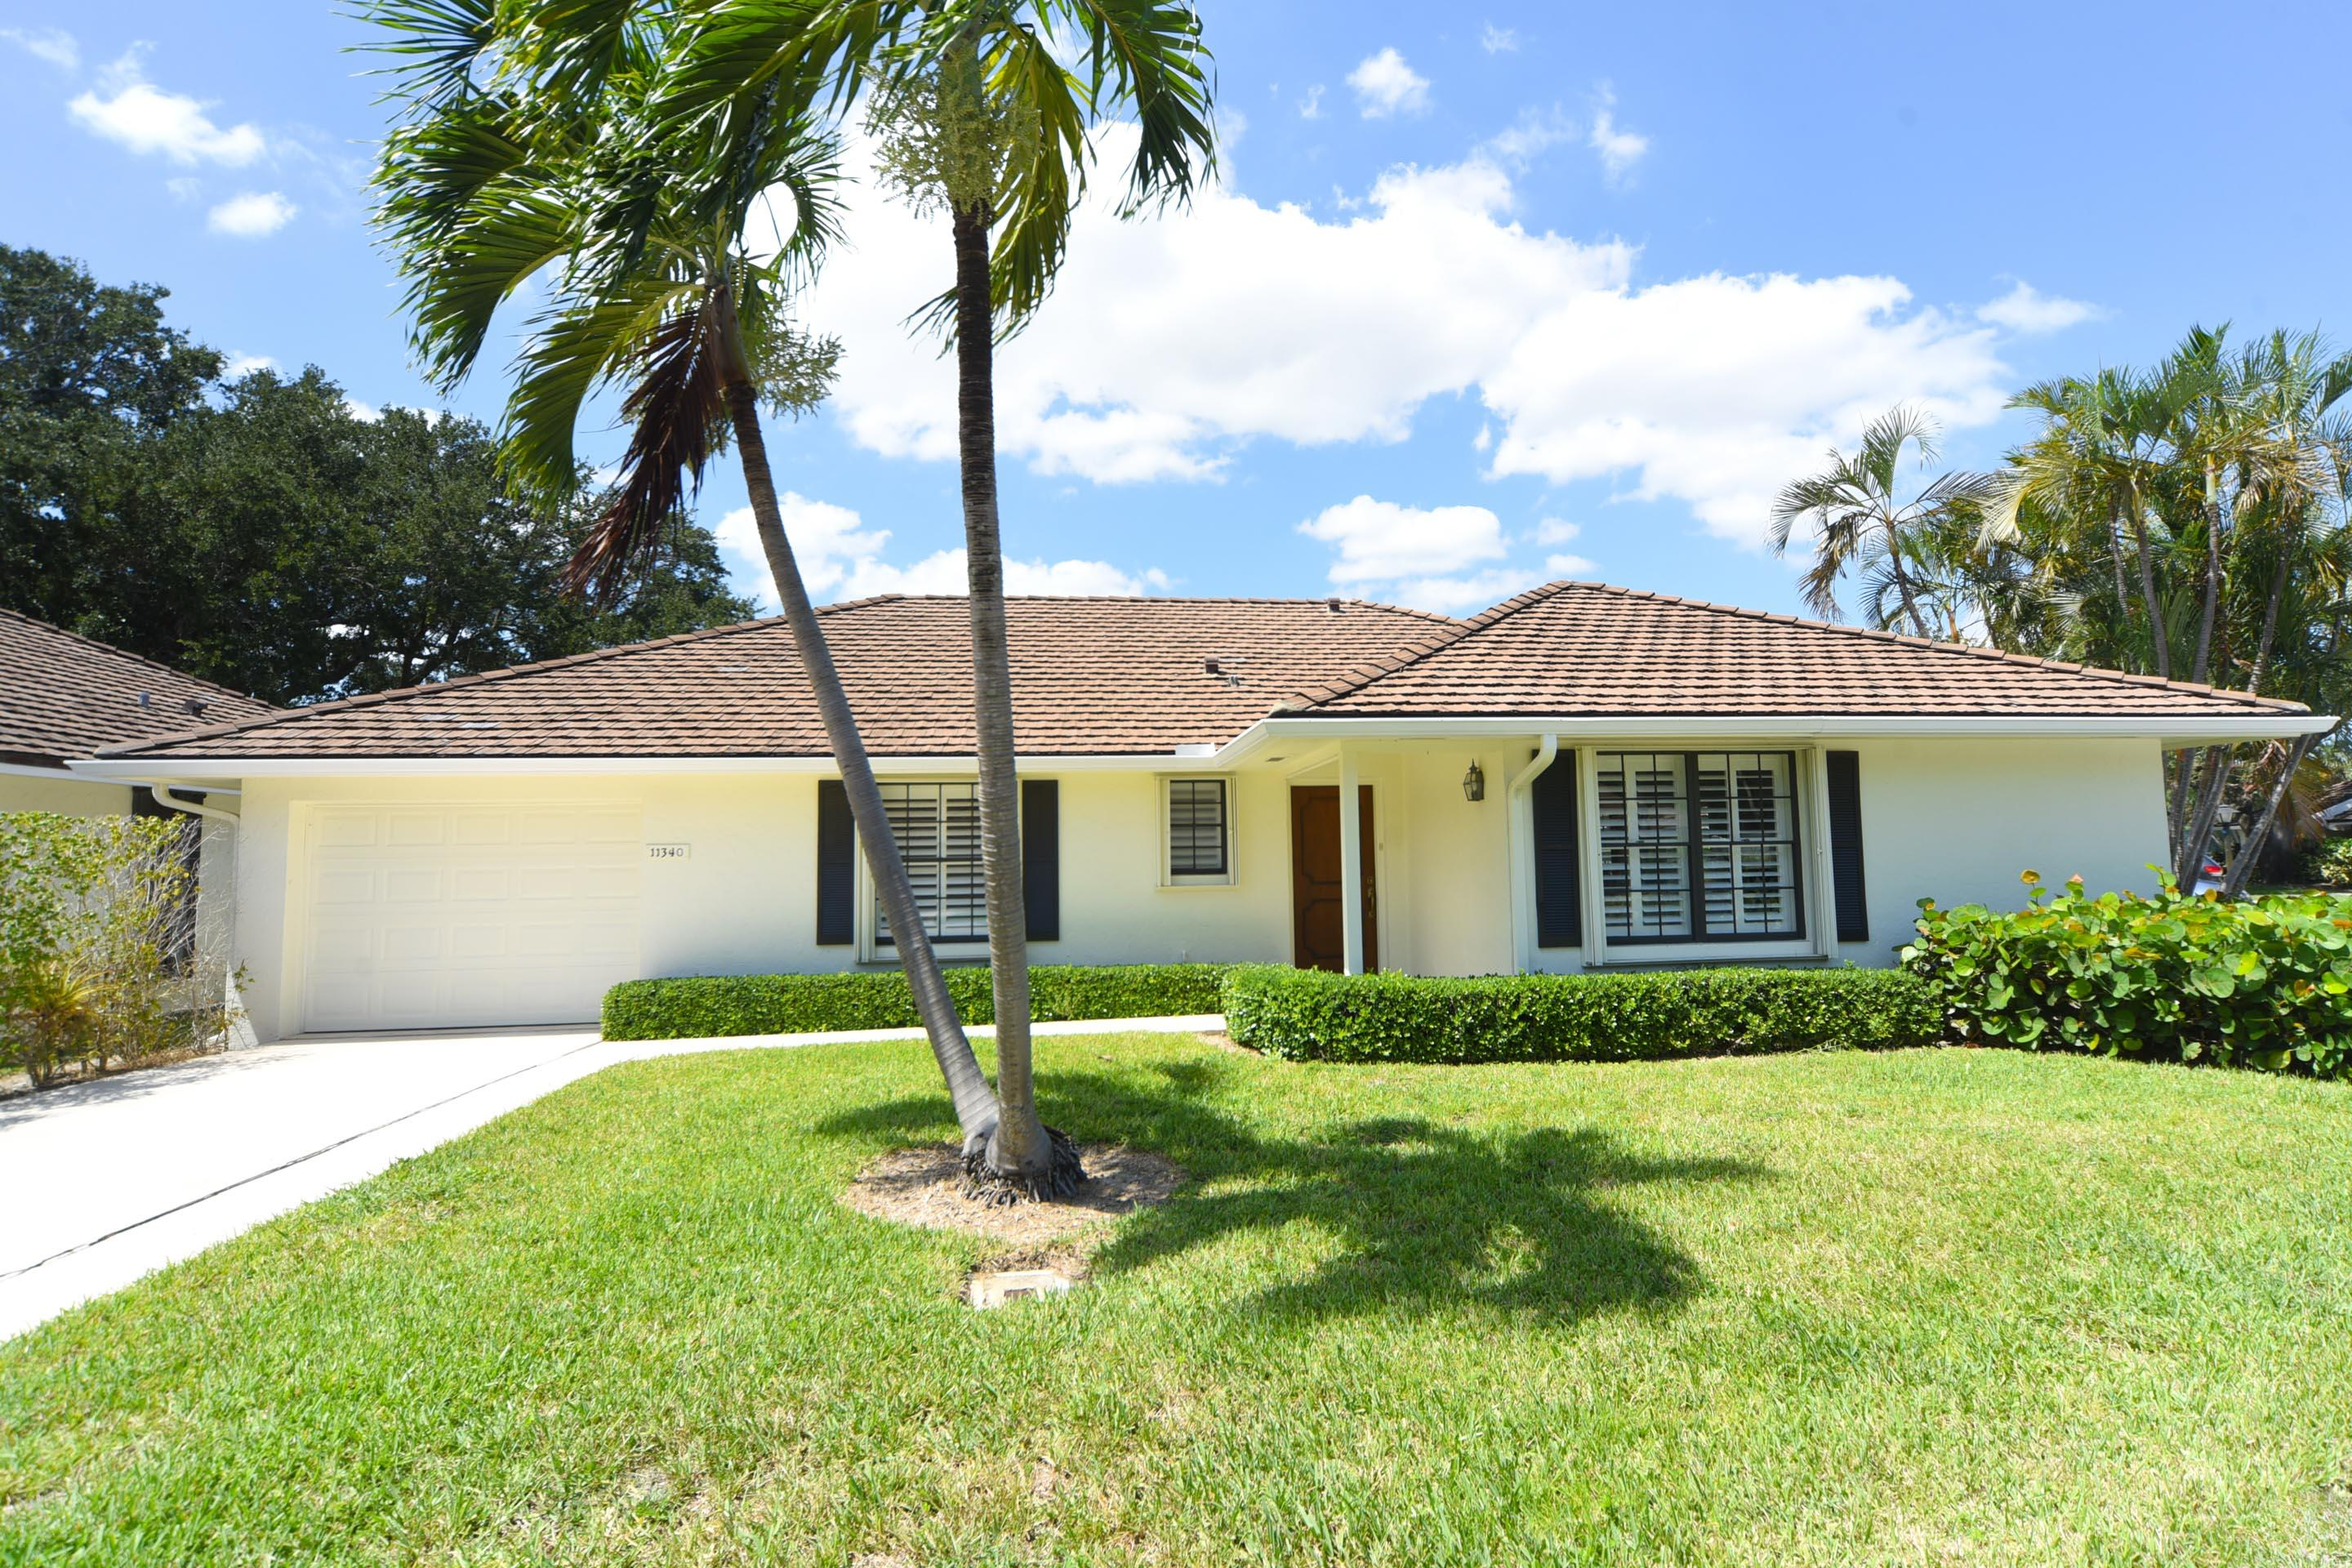 Photo of 11340 Briarwood Place, North Palm Beach, FL 33408